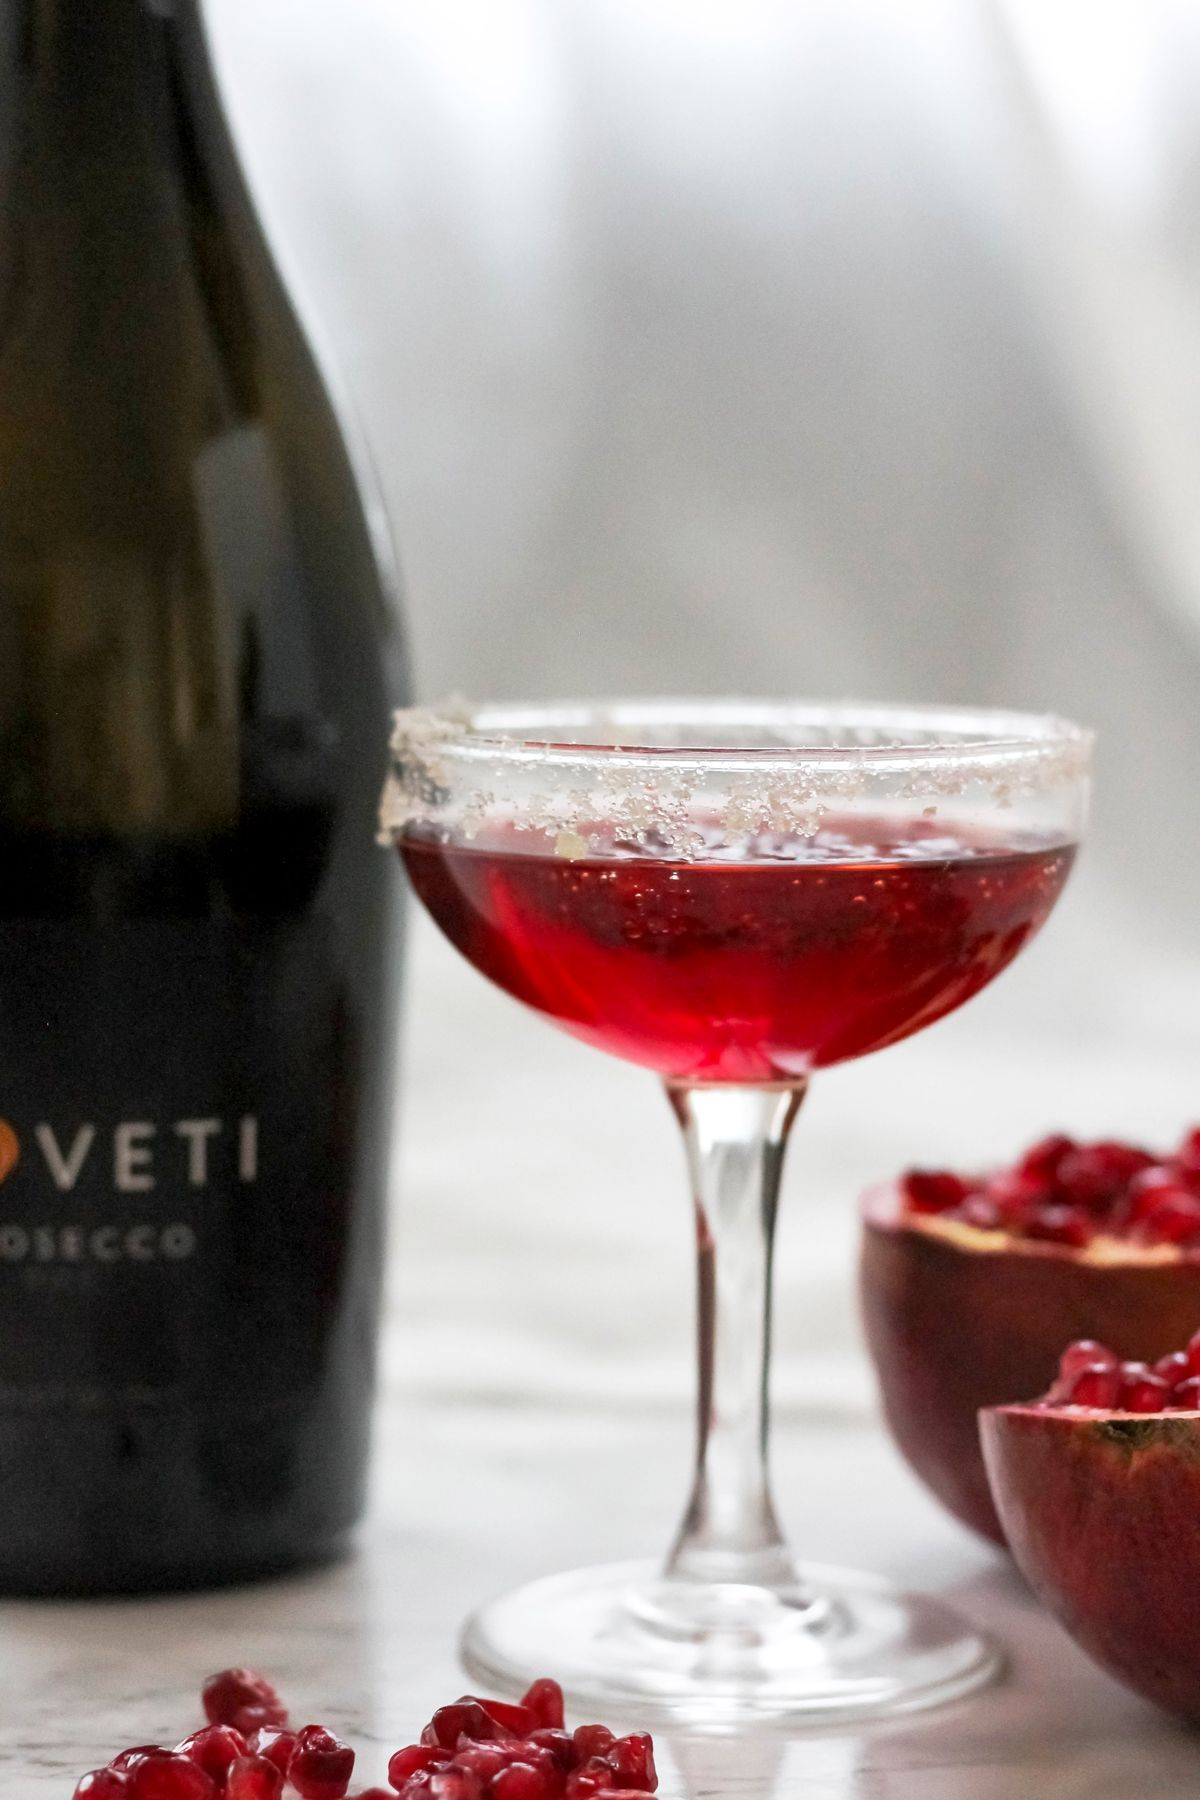 Funkelnder Granatapfel Ingwer Prosecco Cocktail Gebackener Ambrosia In 2020 Prosecco Cocktails Coctails Recipes Delicious Drink Recipes